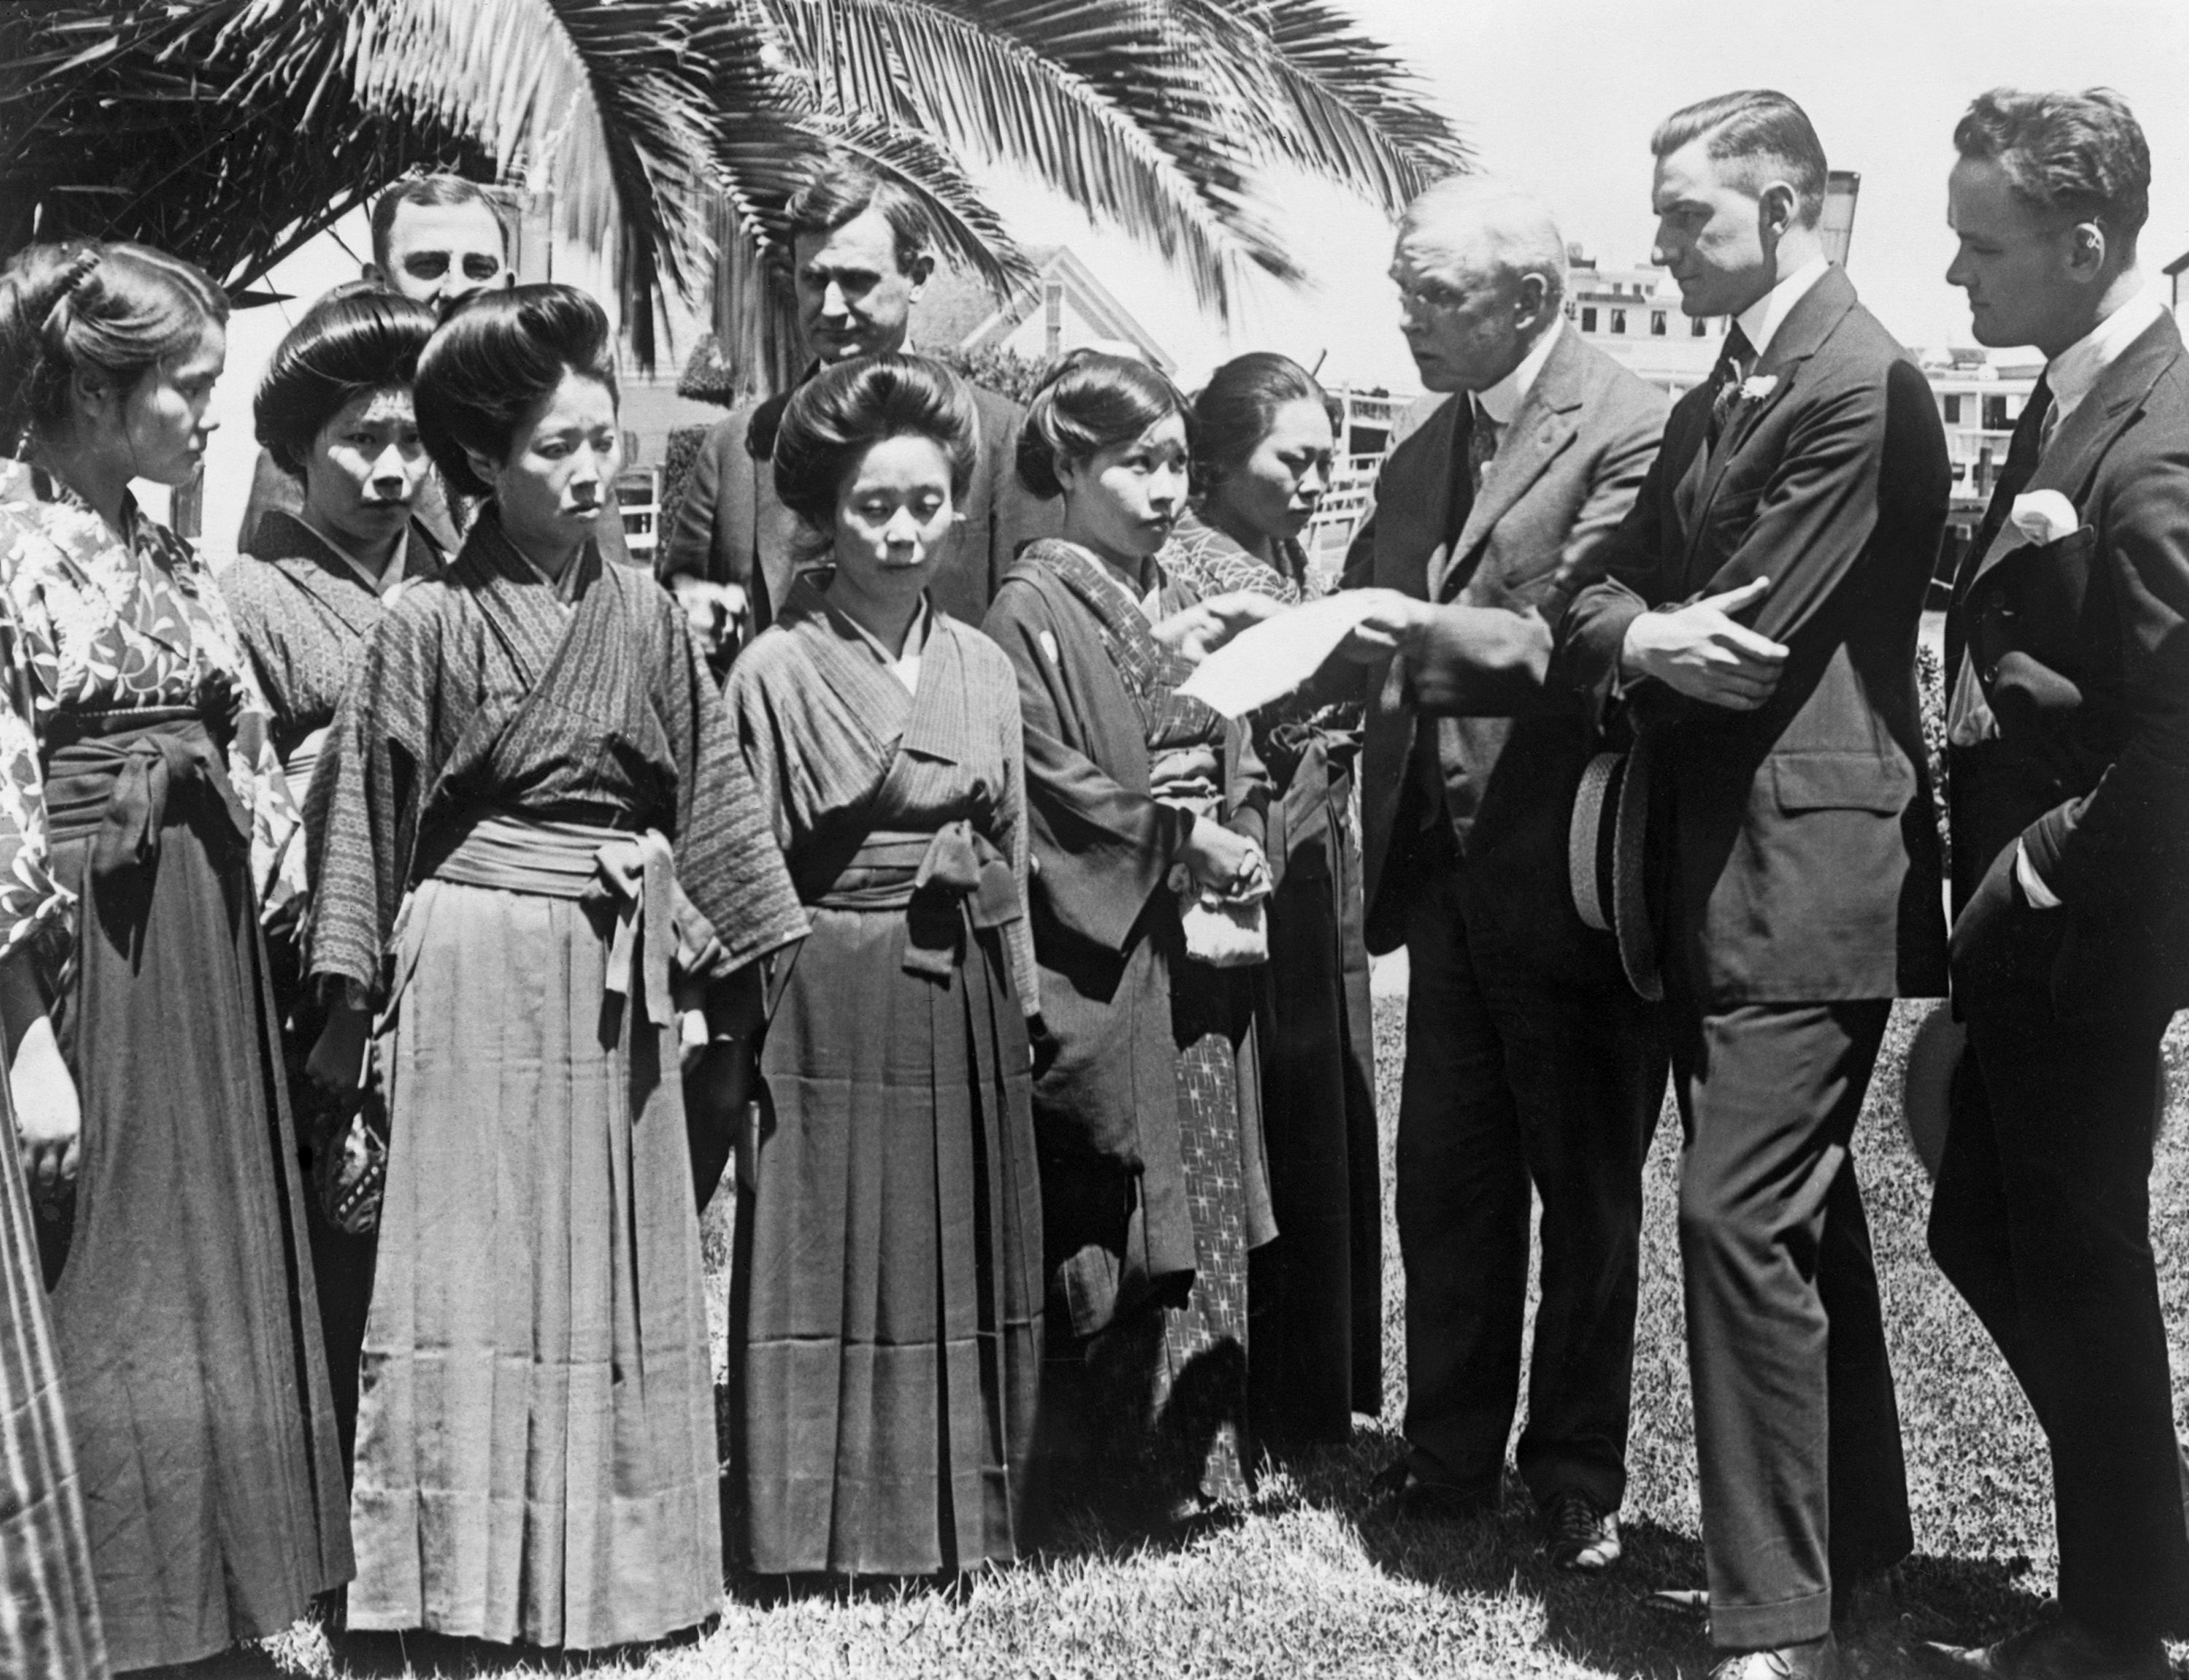 Members of a Congressional committee look over passports of Japanese immigrants